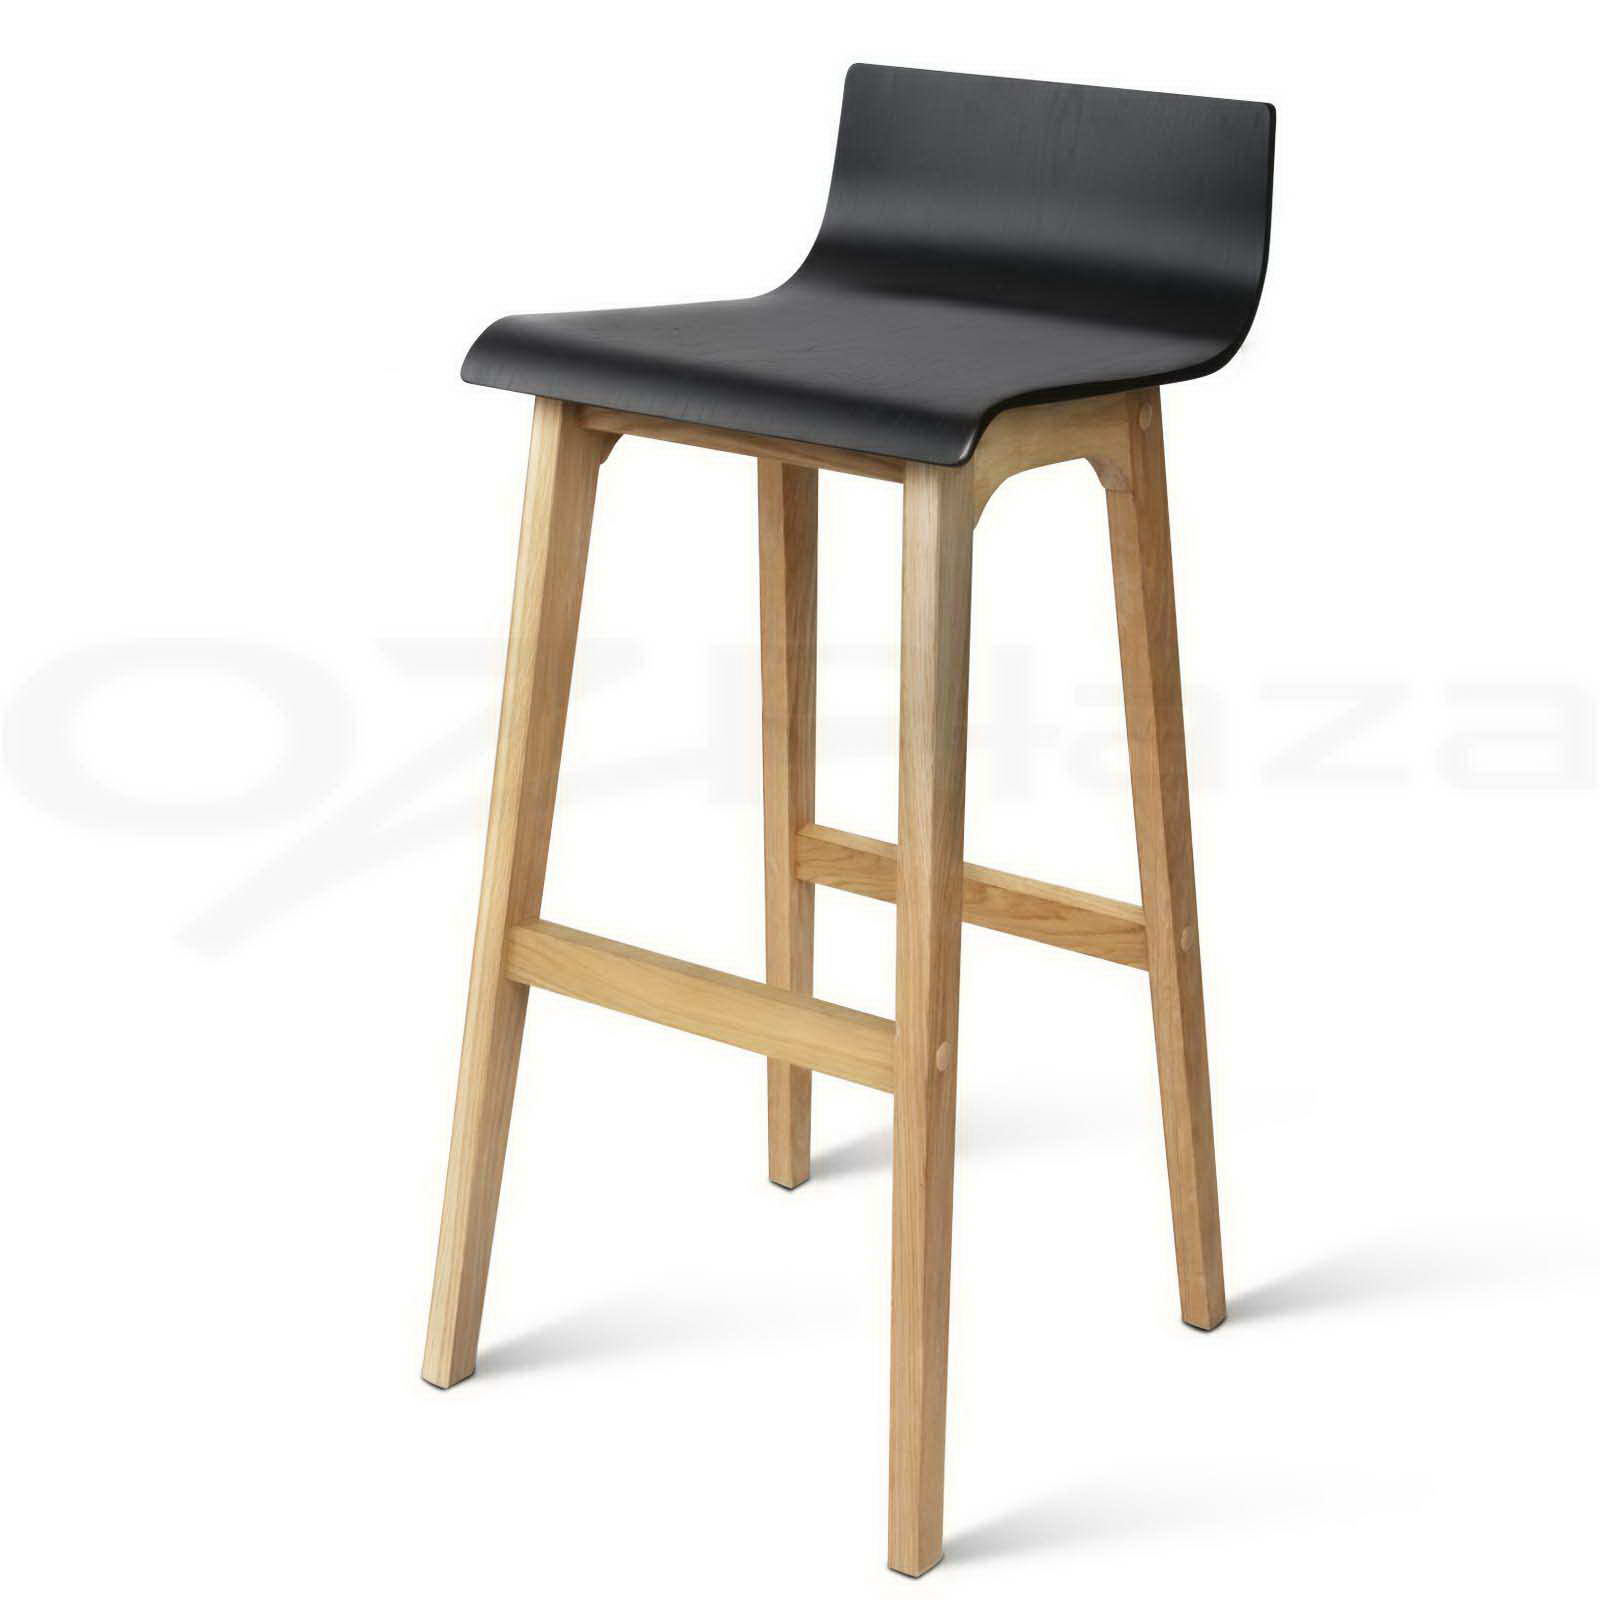 Marvelous photograph of 2x Oak Wood Bar Stools Wooden Barstool Dining Chairs Kitchen Plywood  with #946F37 color and 1600x1600 pixels